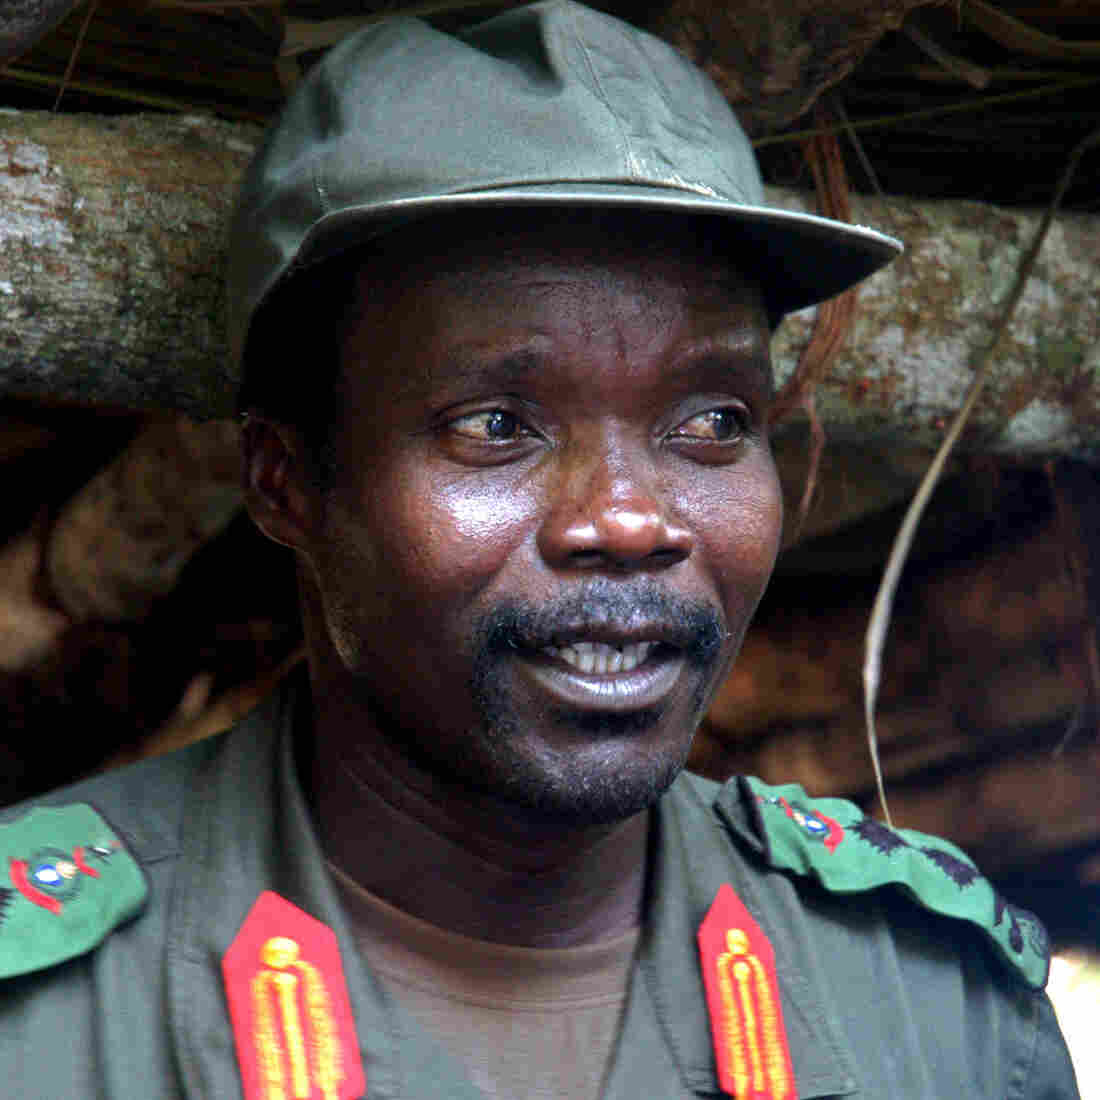 Armies Can't Find Joseph Kony. Can Crowdfunding?